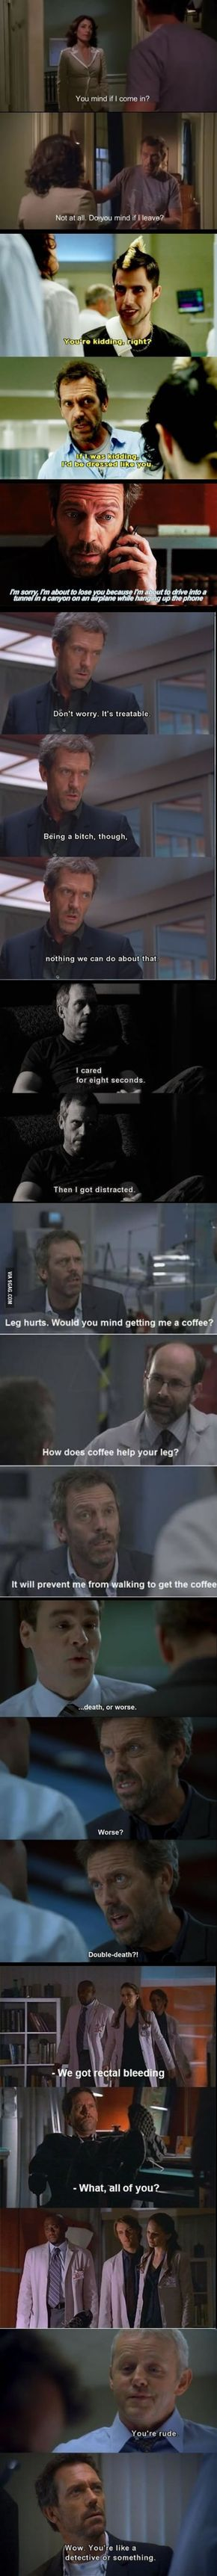 House being House too funny!